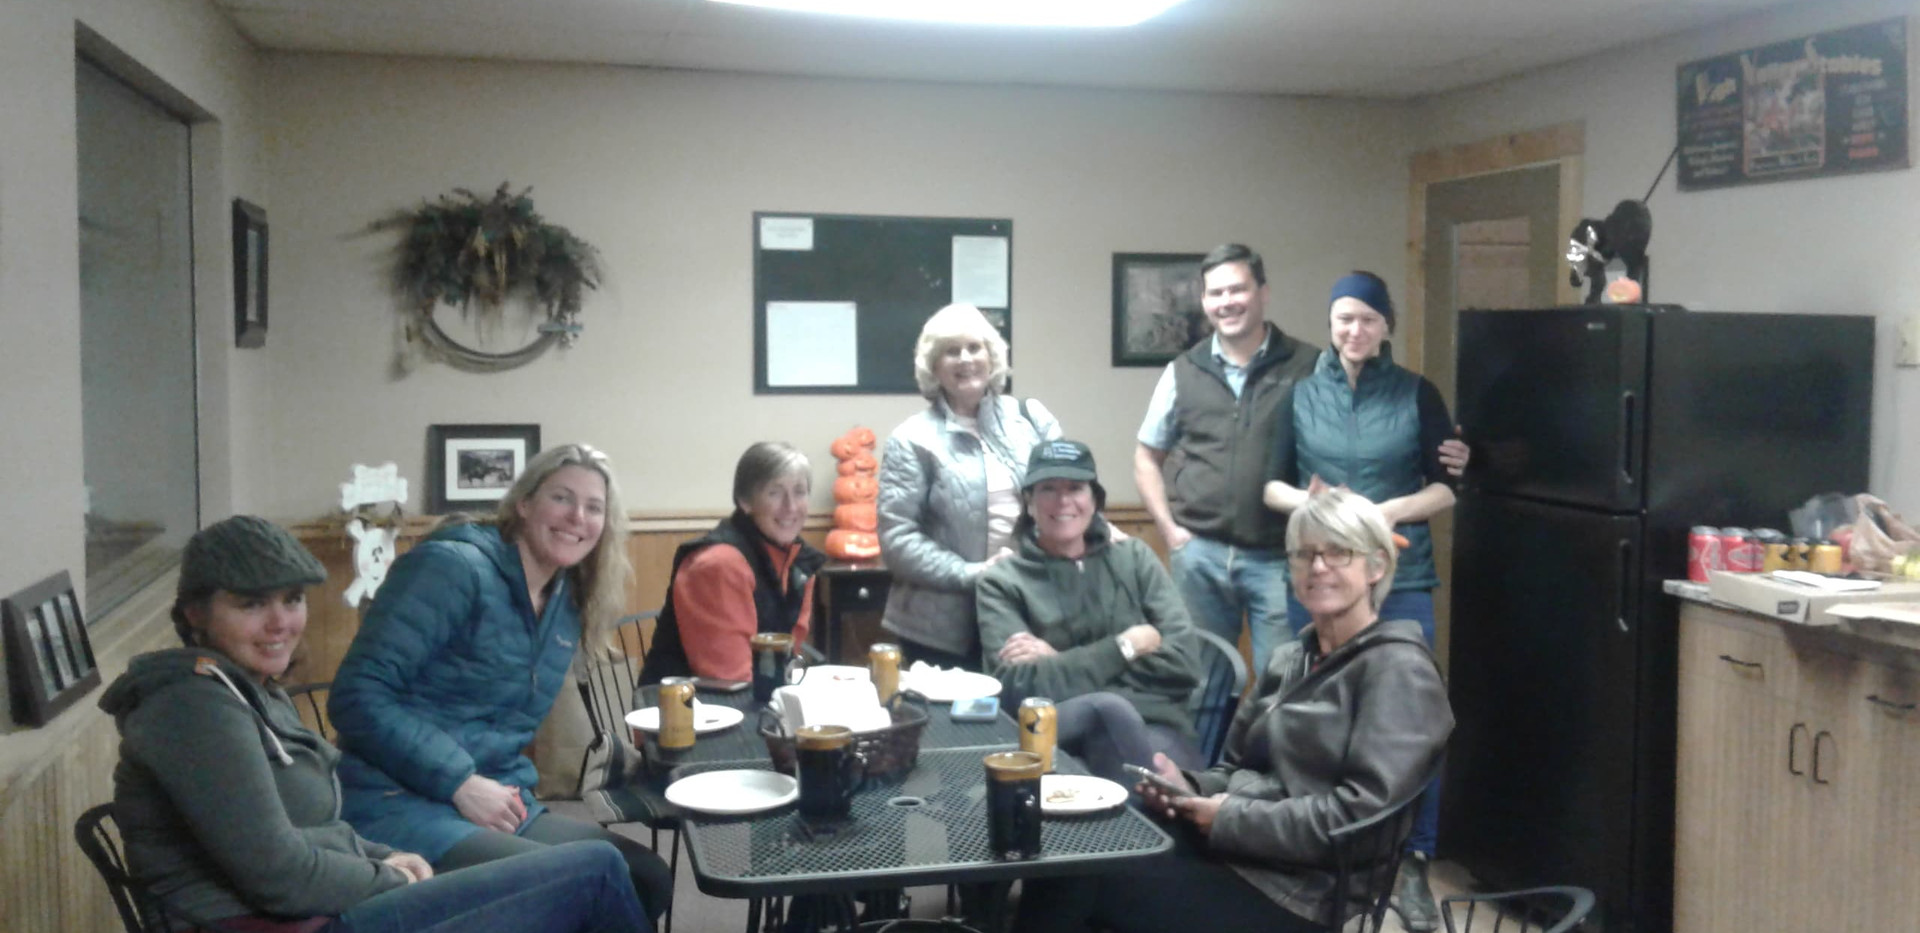 Great saddle fitting and clinic with Art2ride's Karen Loshbaugh